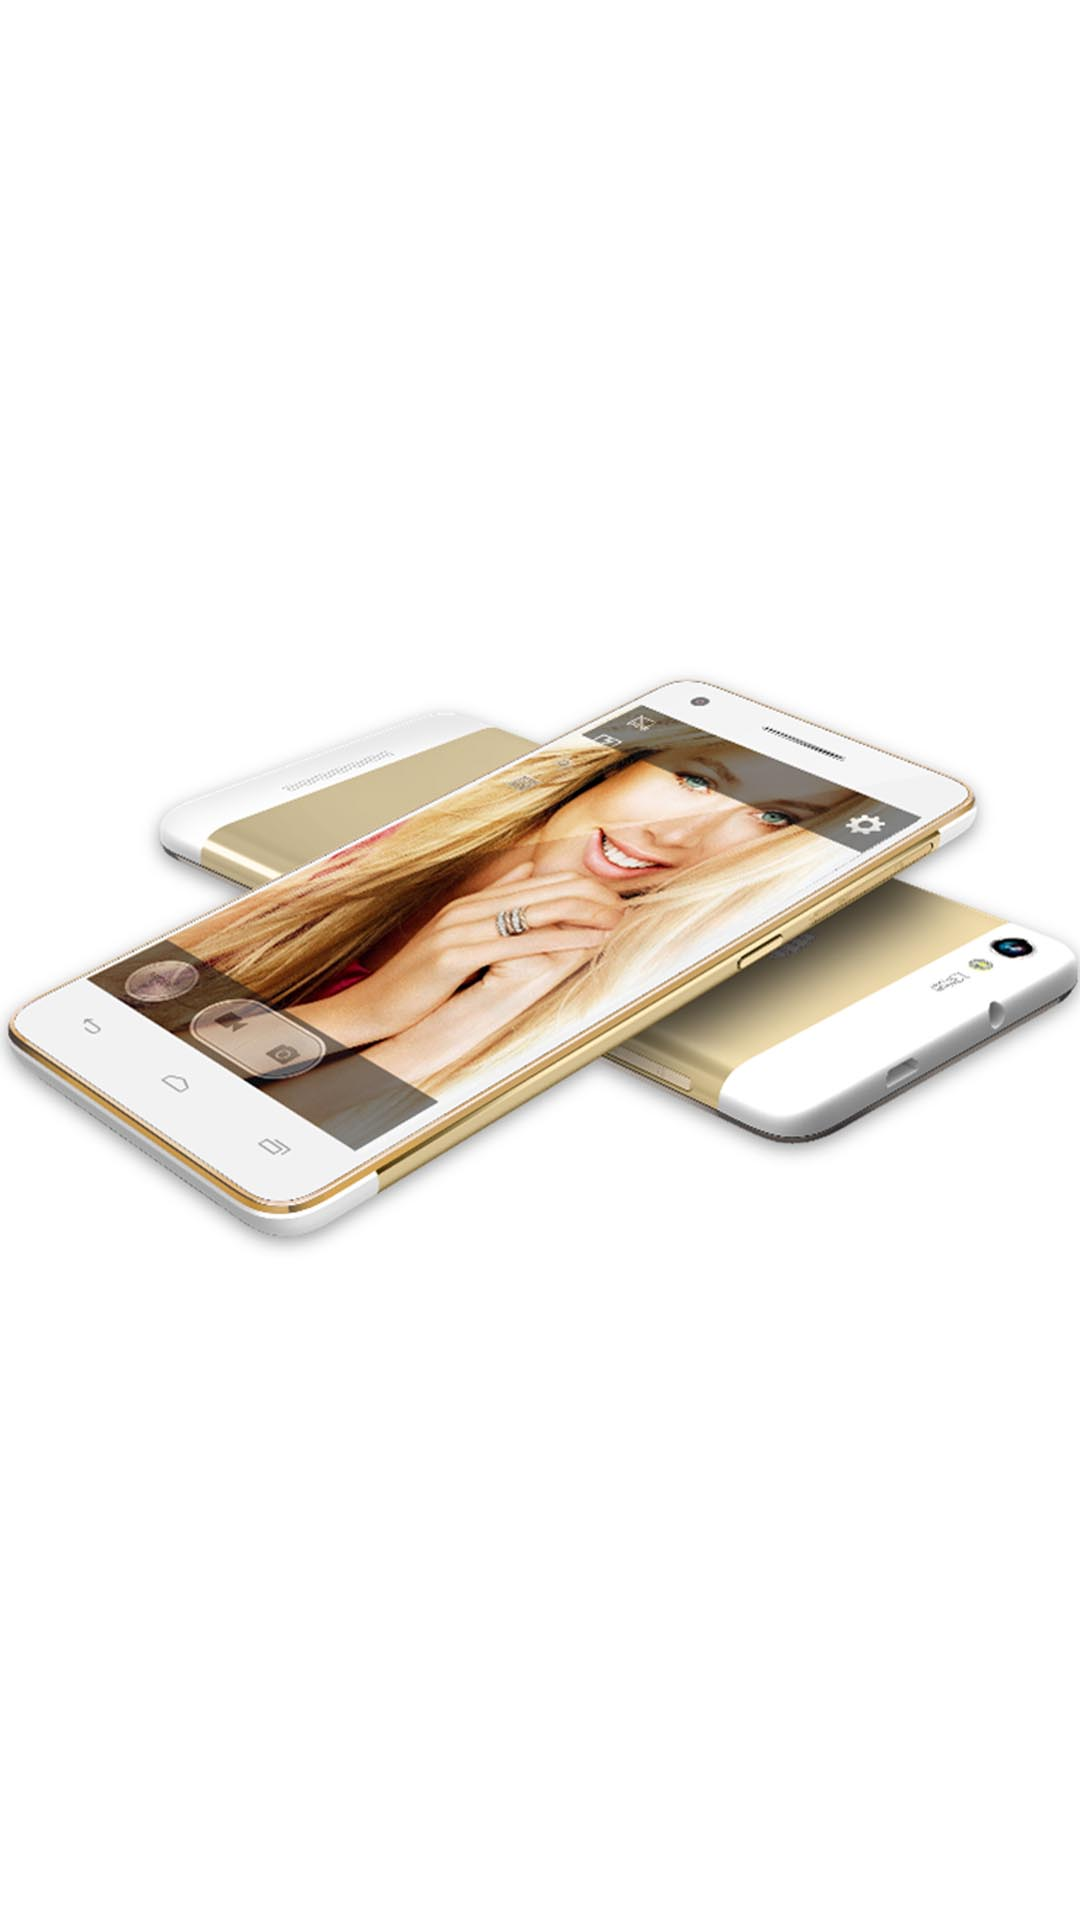 Micromax Canvas 4 Plus A315 16GB White and Gold